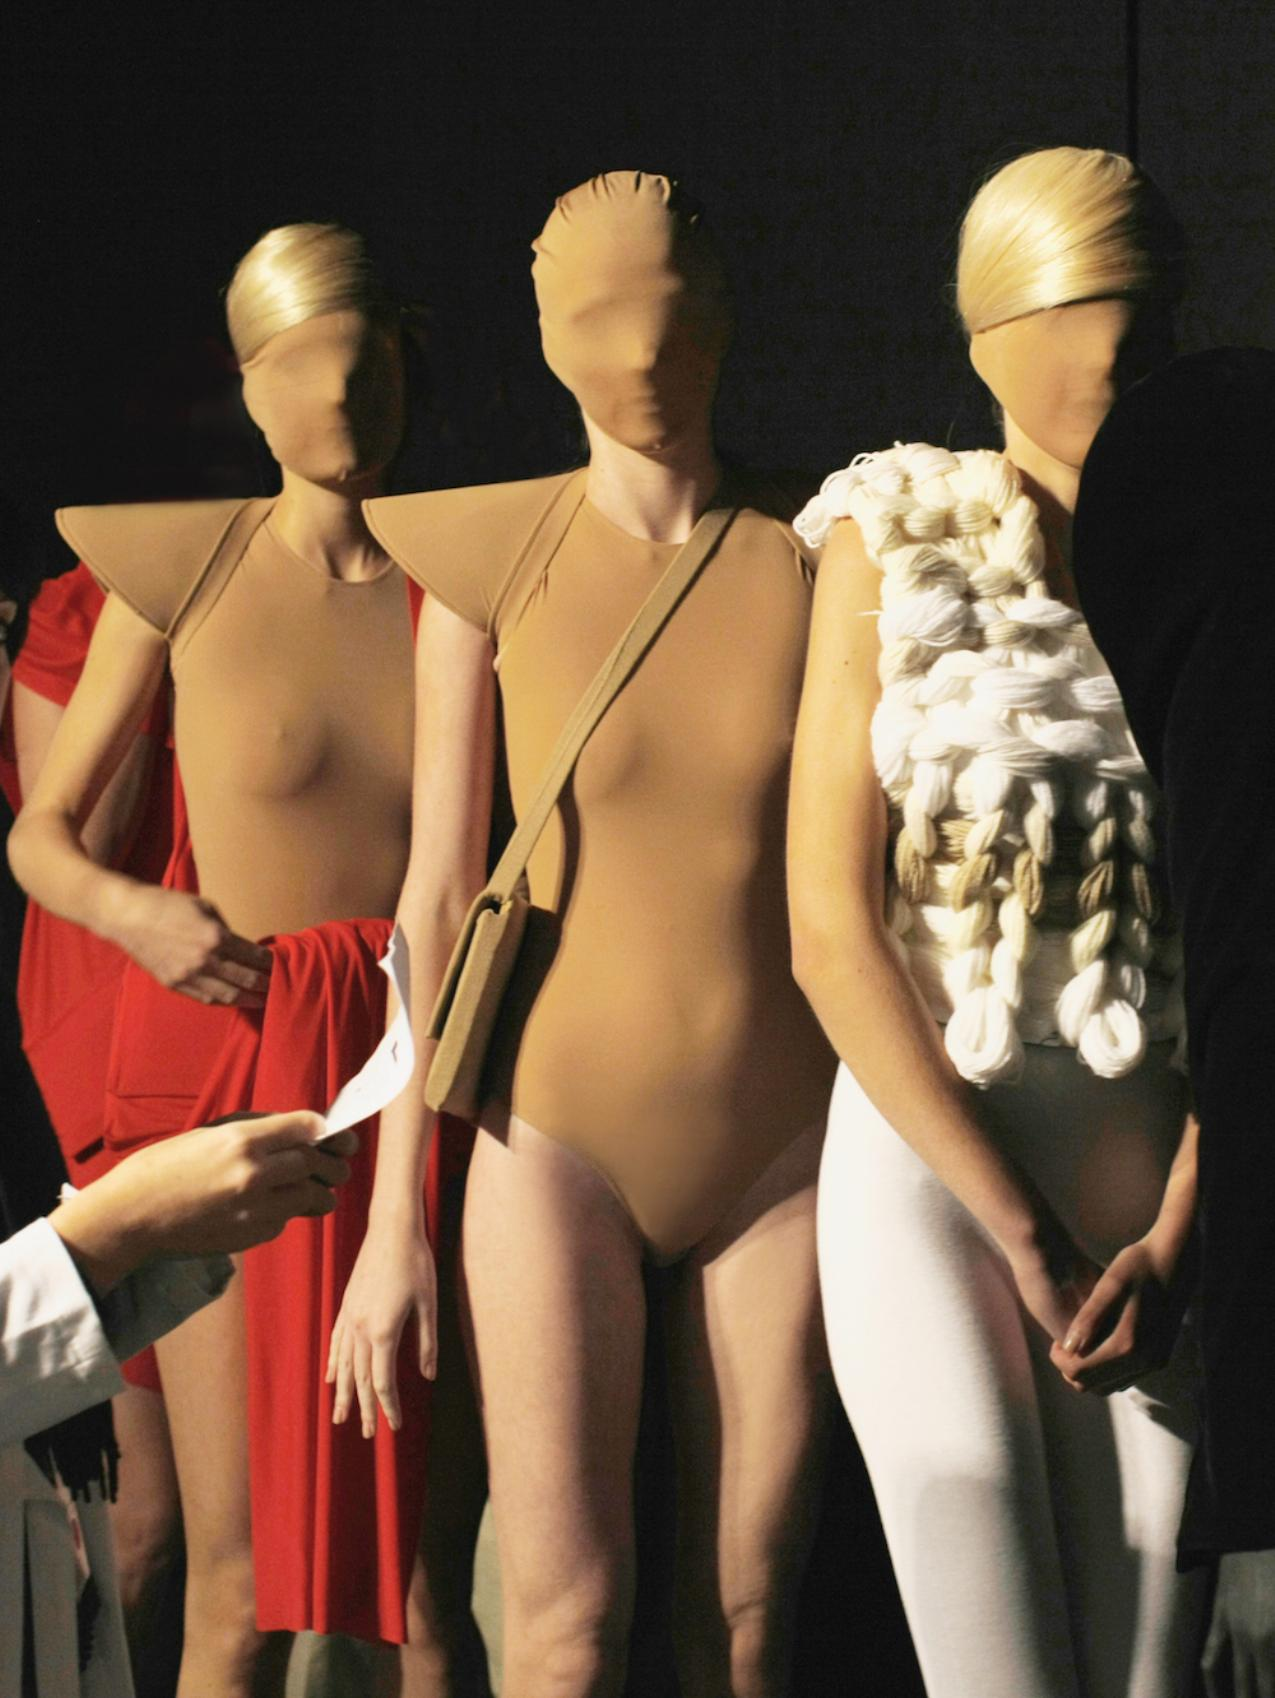 explore-martin-margielas-time-at-the-helm-of-herms-at-momu-antwerp-body-image-1490989437-1